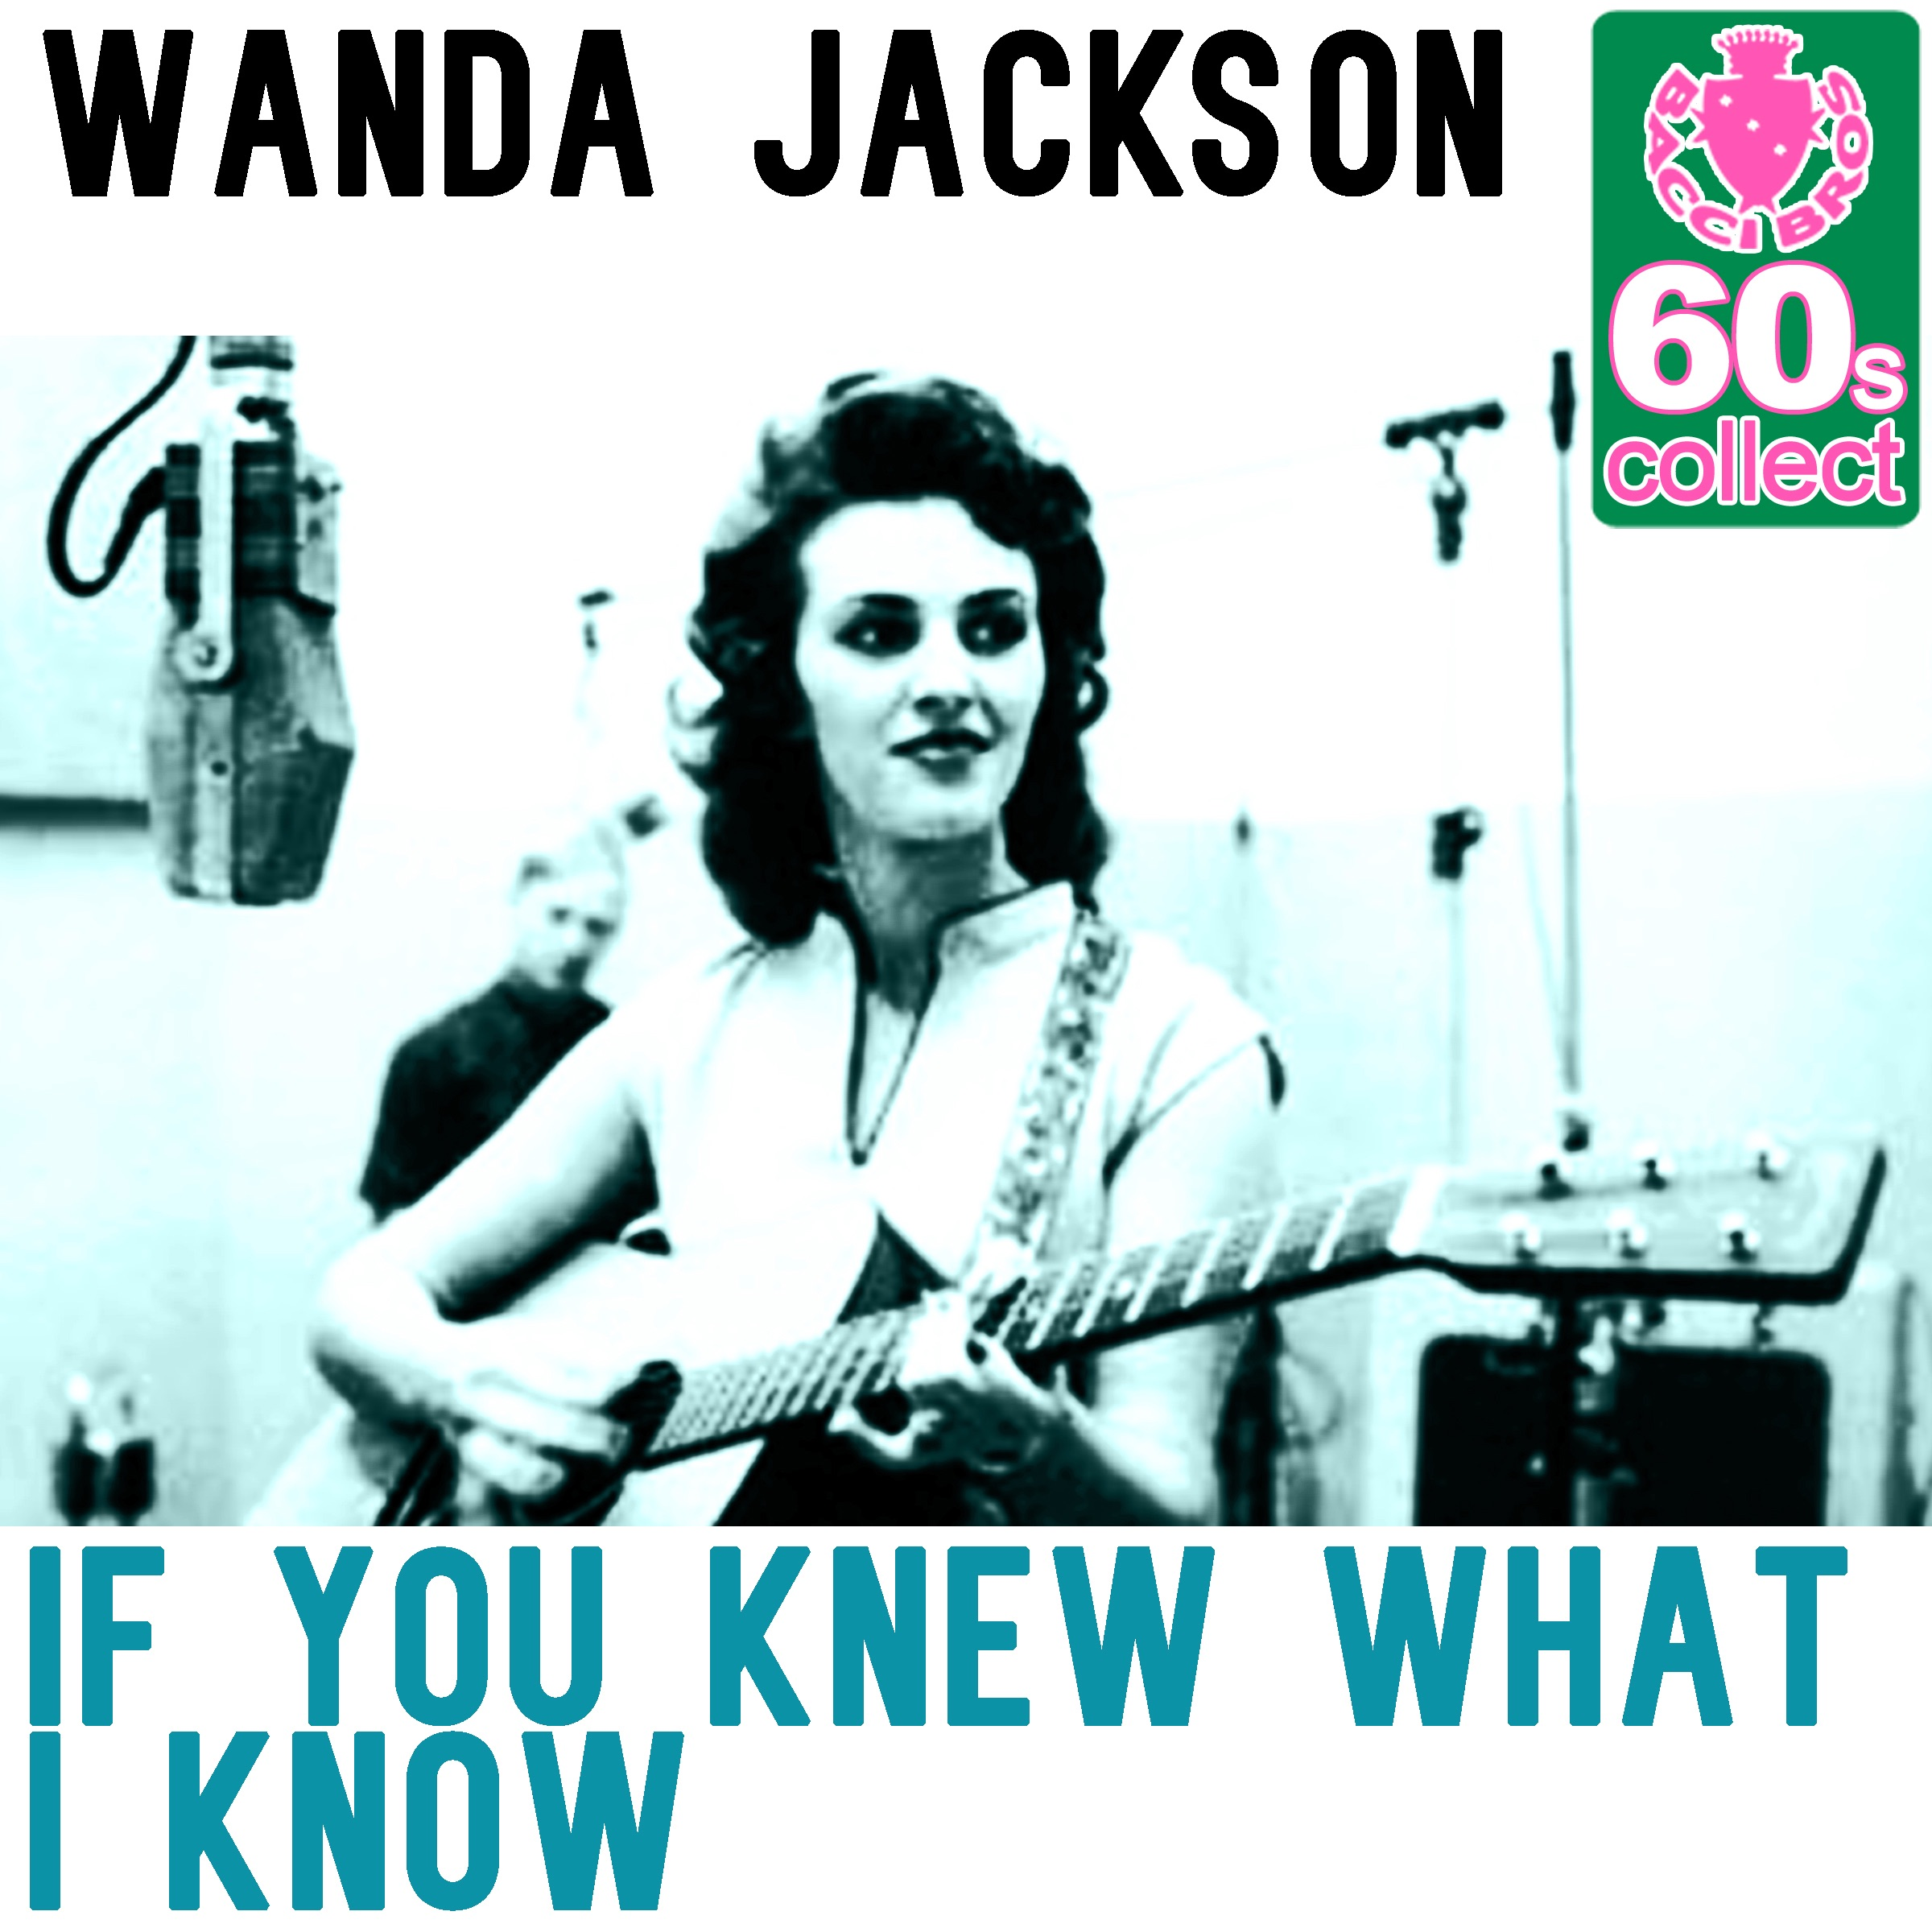 If You Knew What I Know (Remastered) - Single